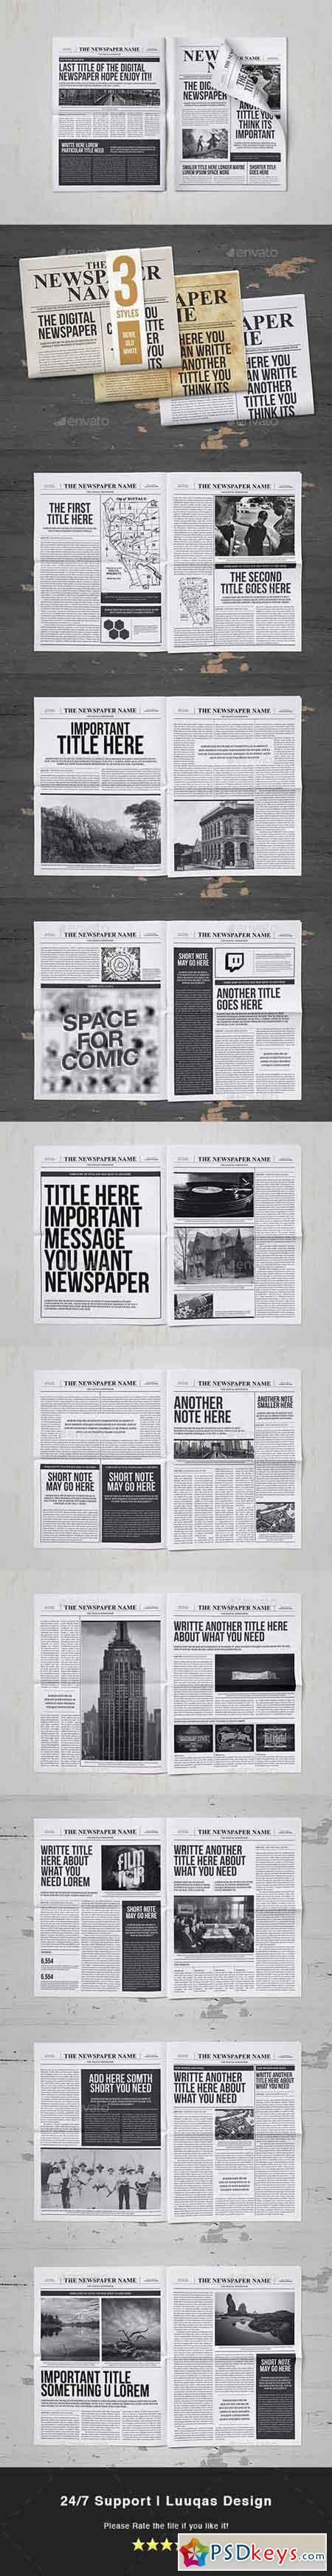 adobe indesign newspaper templates free newspaper indesign template 17574410 187 free